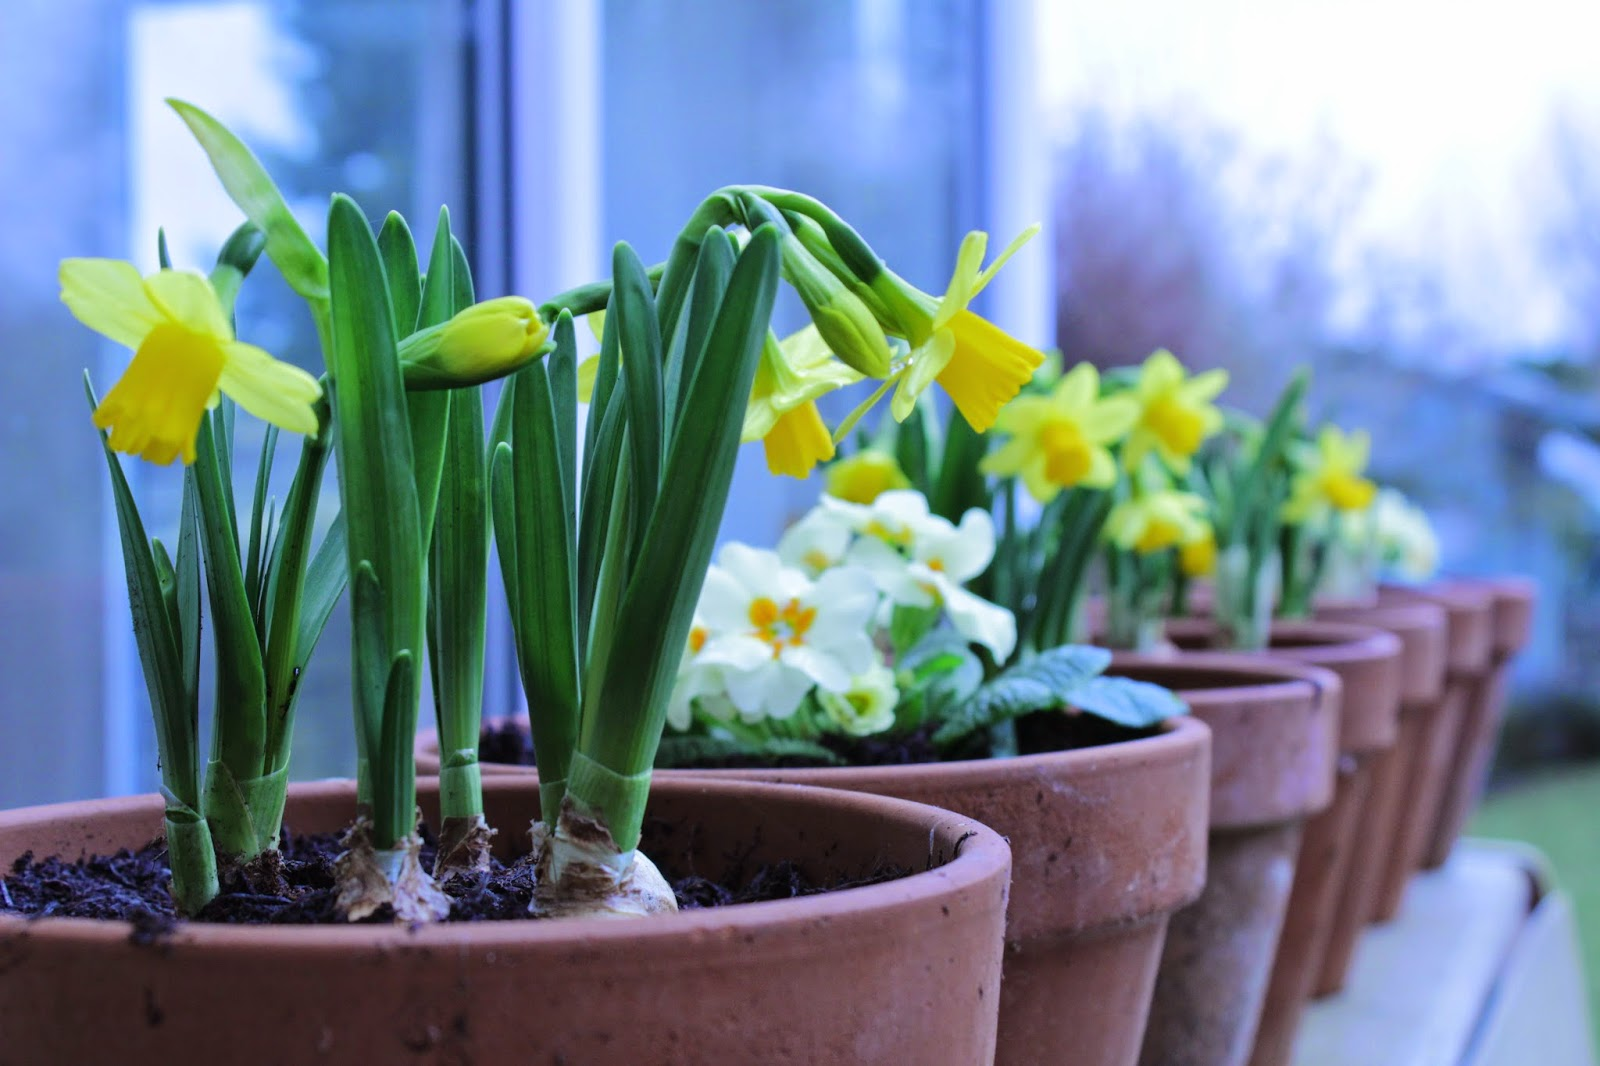 Project 365 day 46 - Daffodils & Primroses // 76sunflowers